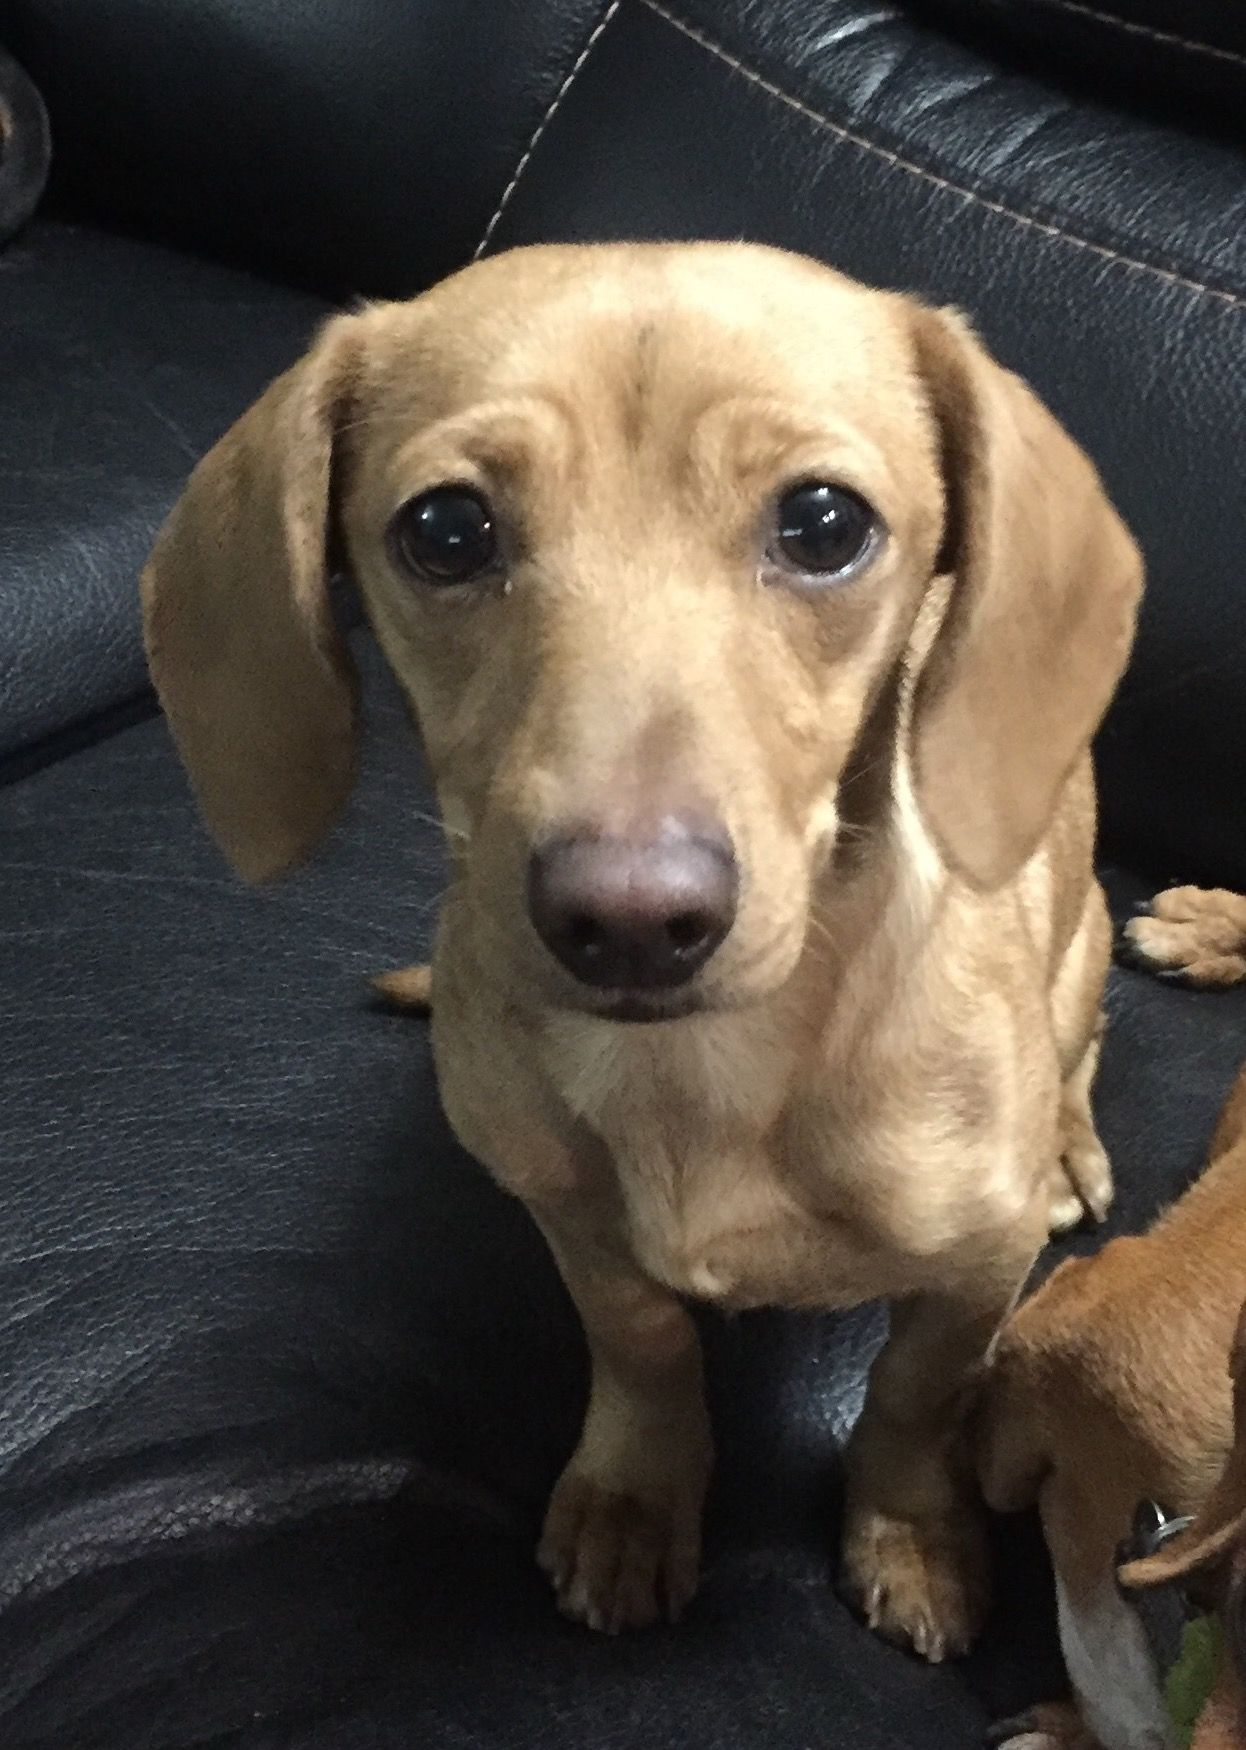 Dachshund dog for Adoption in Los Angeles, CA. ADN409151